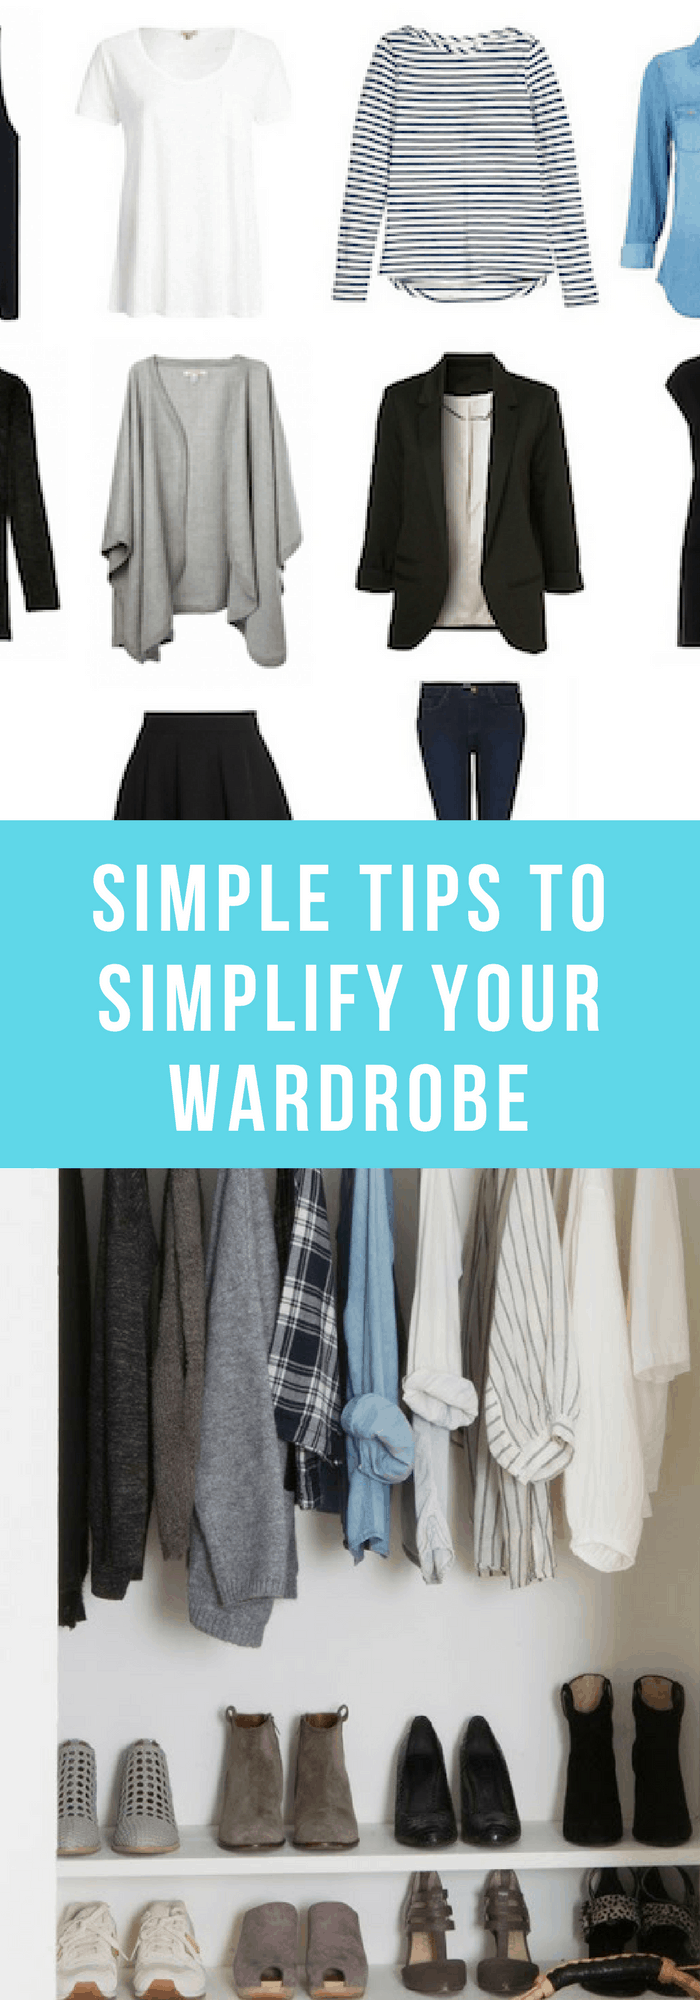 Minimalism--Siple Tips to Simplify Your Wardrobe--The Organized Mom